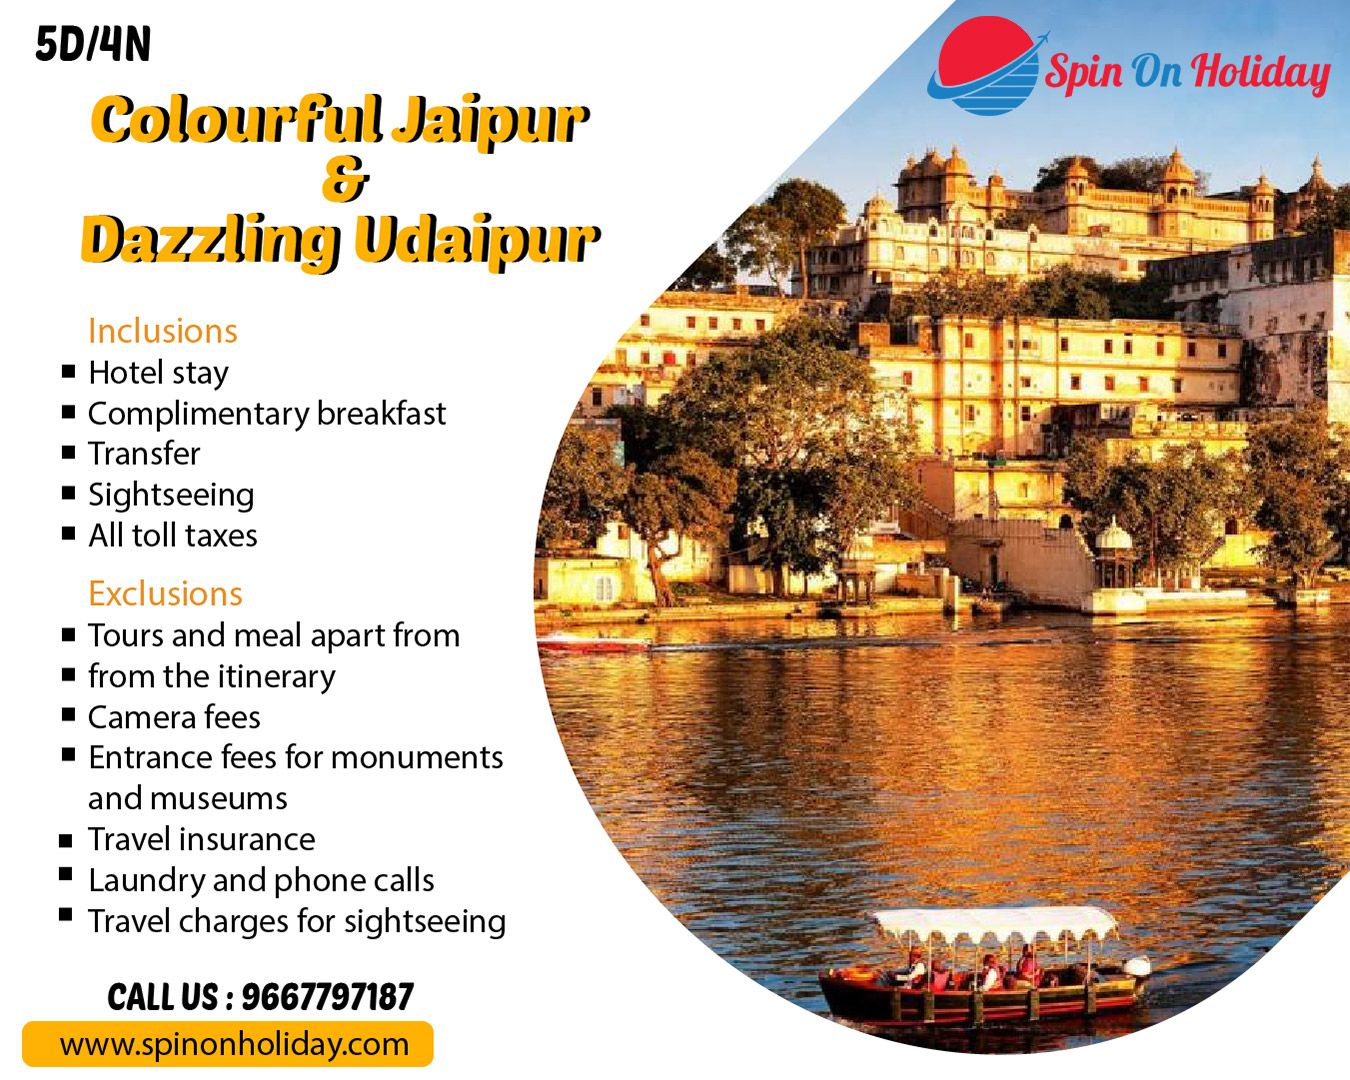 Jaipur amp Udaipur Tour Package Get involved with the culture heritage, lakes, historical scriptures